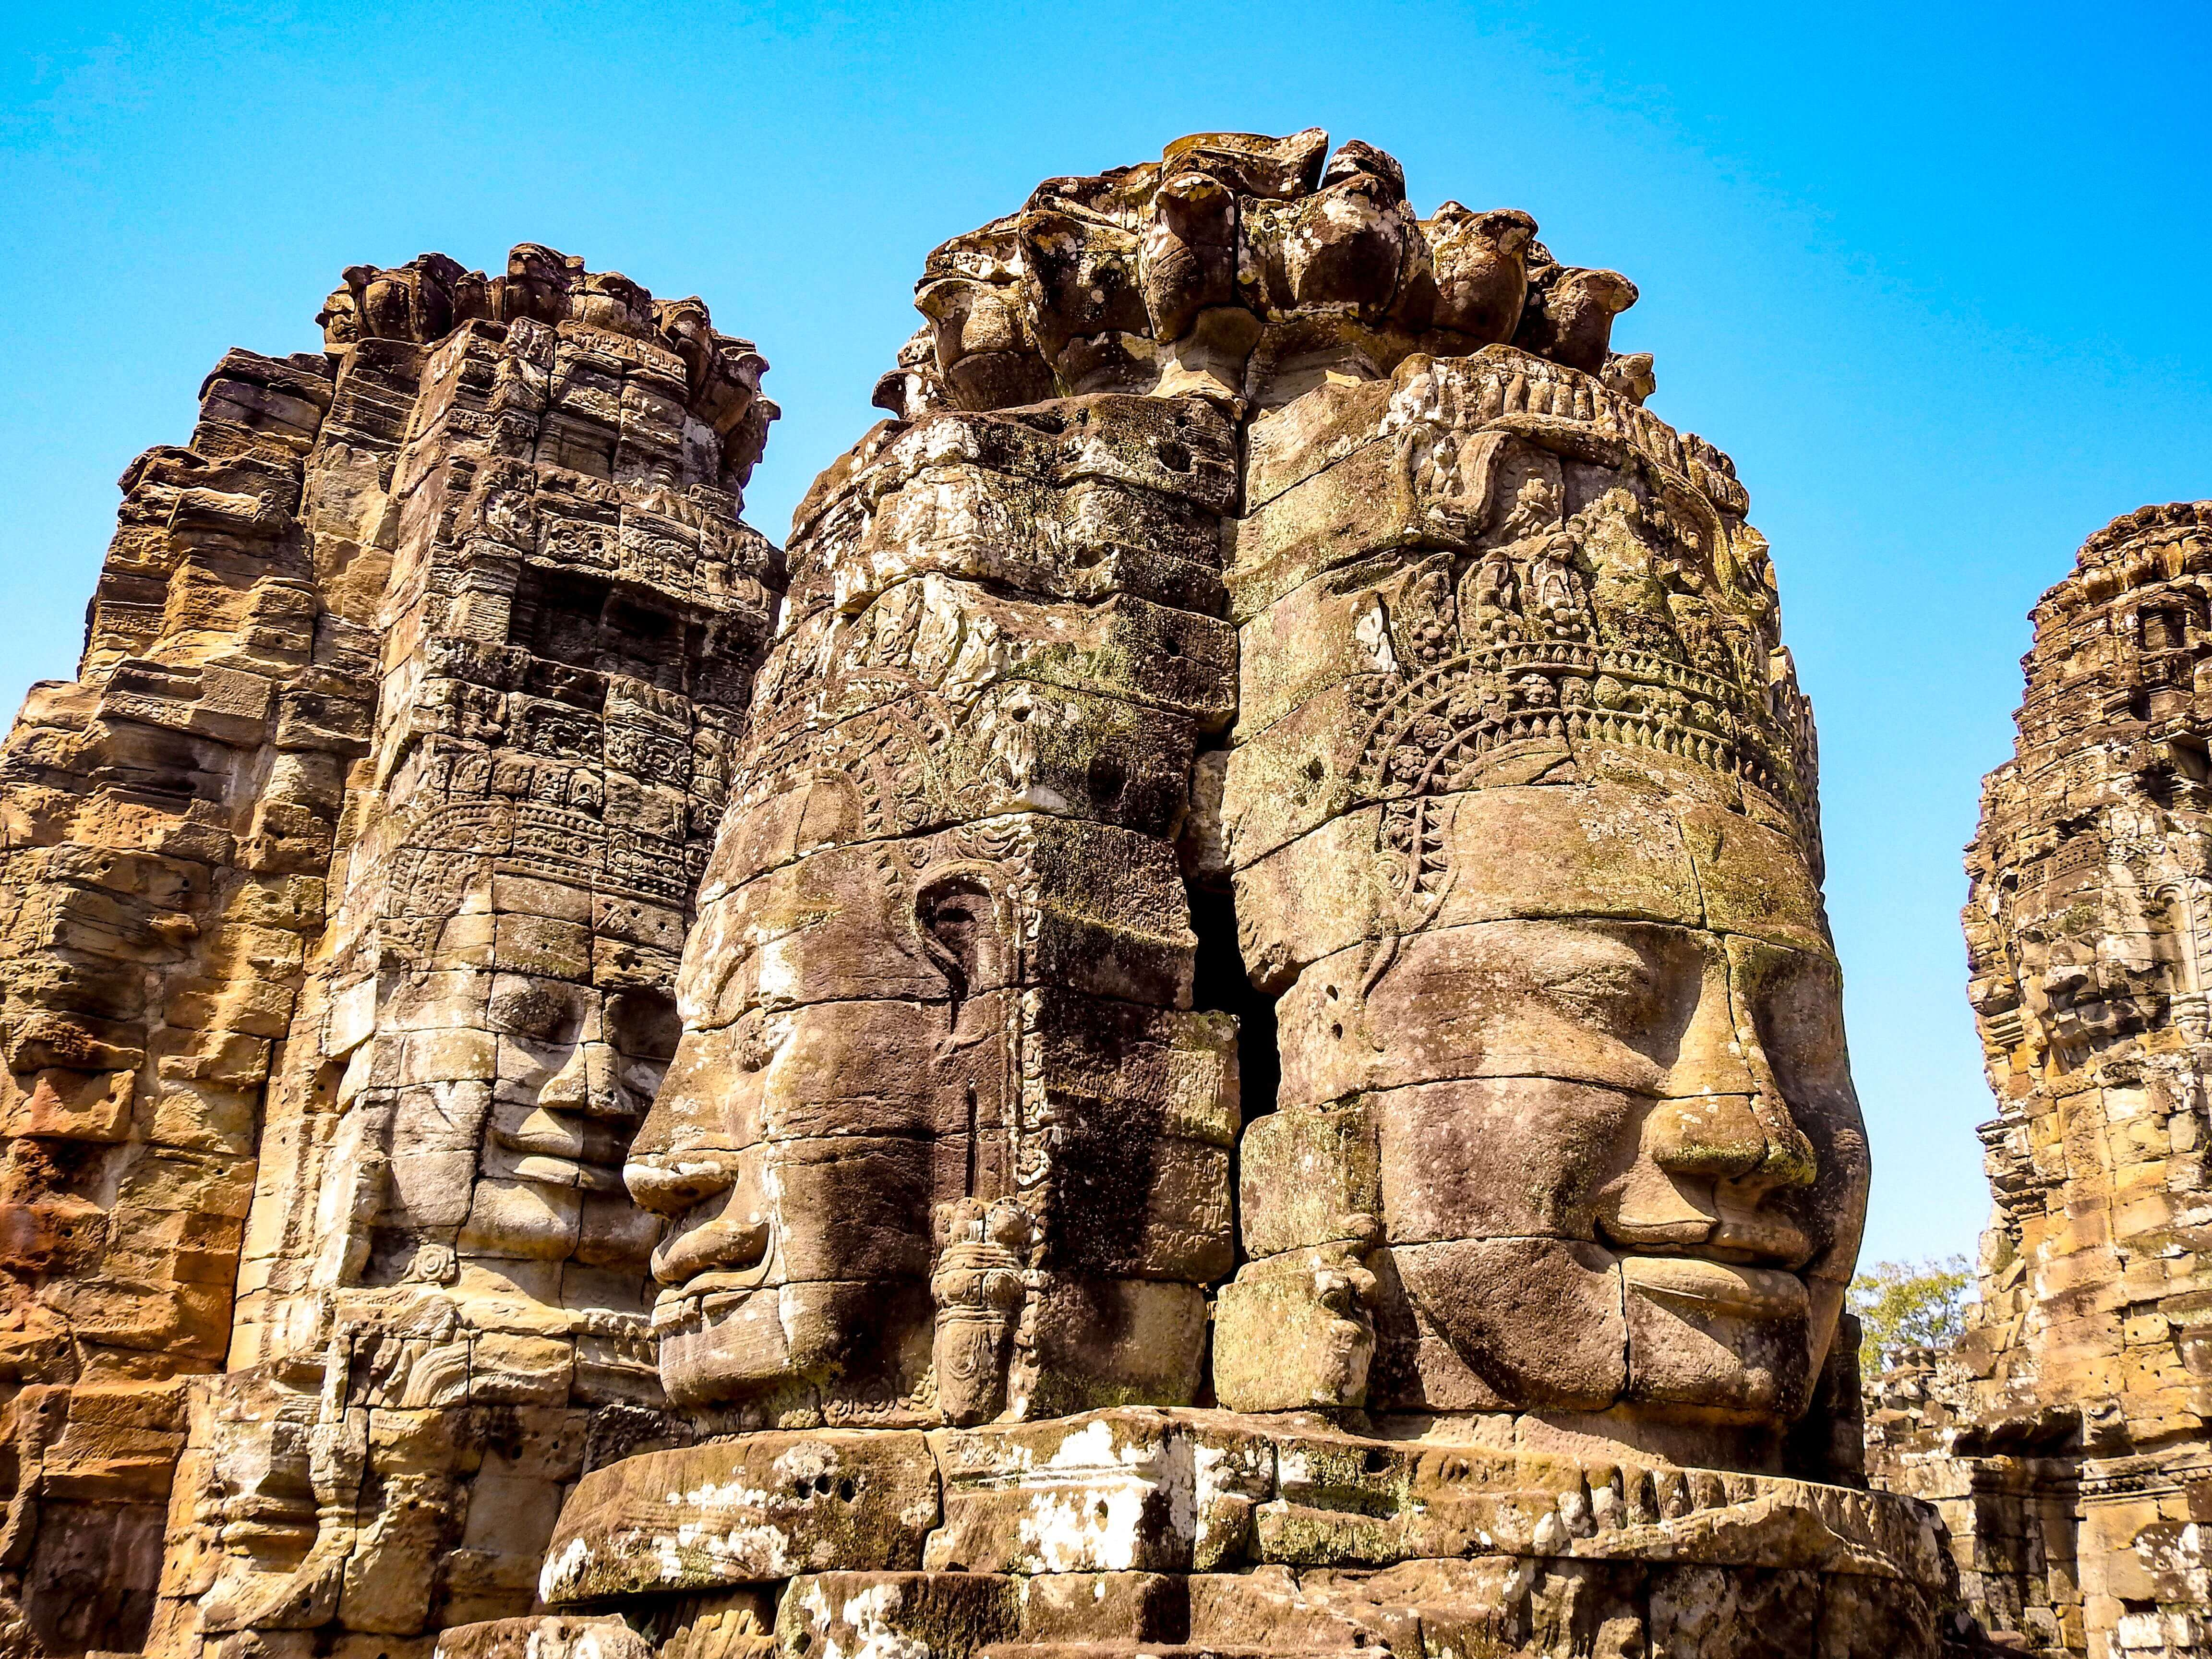 The smiling, zen-like faces of the Bayon in Angkor, Cambodia.